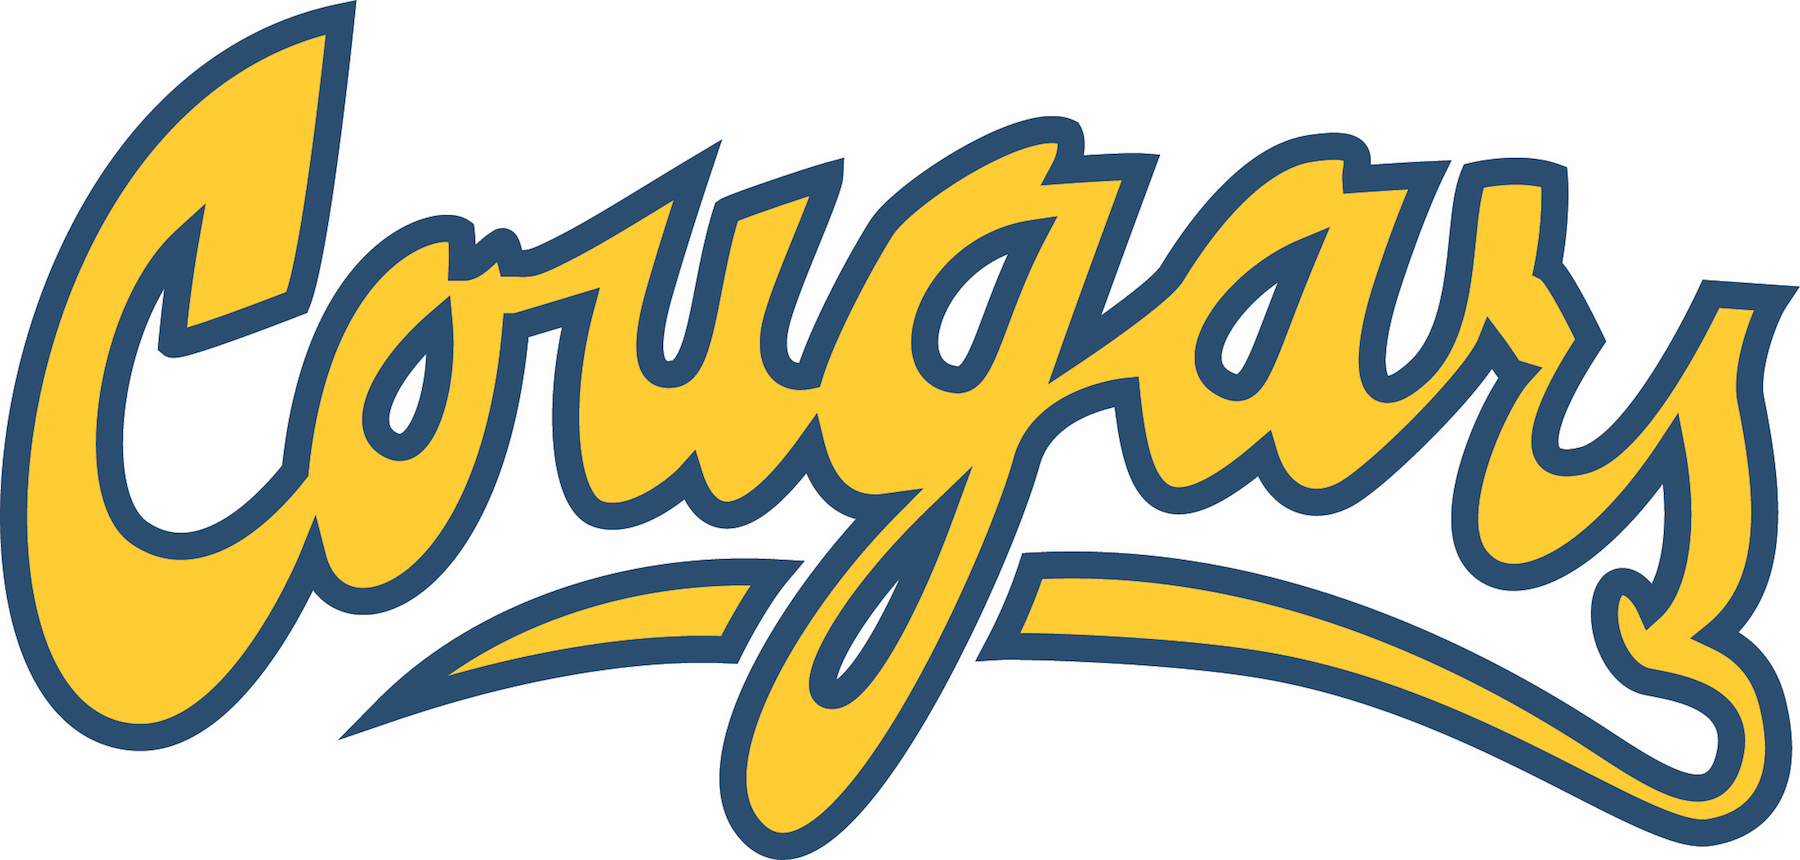 College of the Canyons athletics script logo.